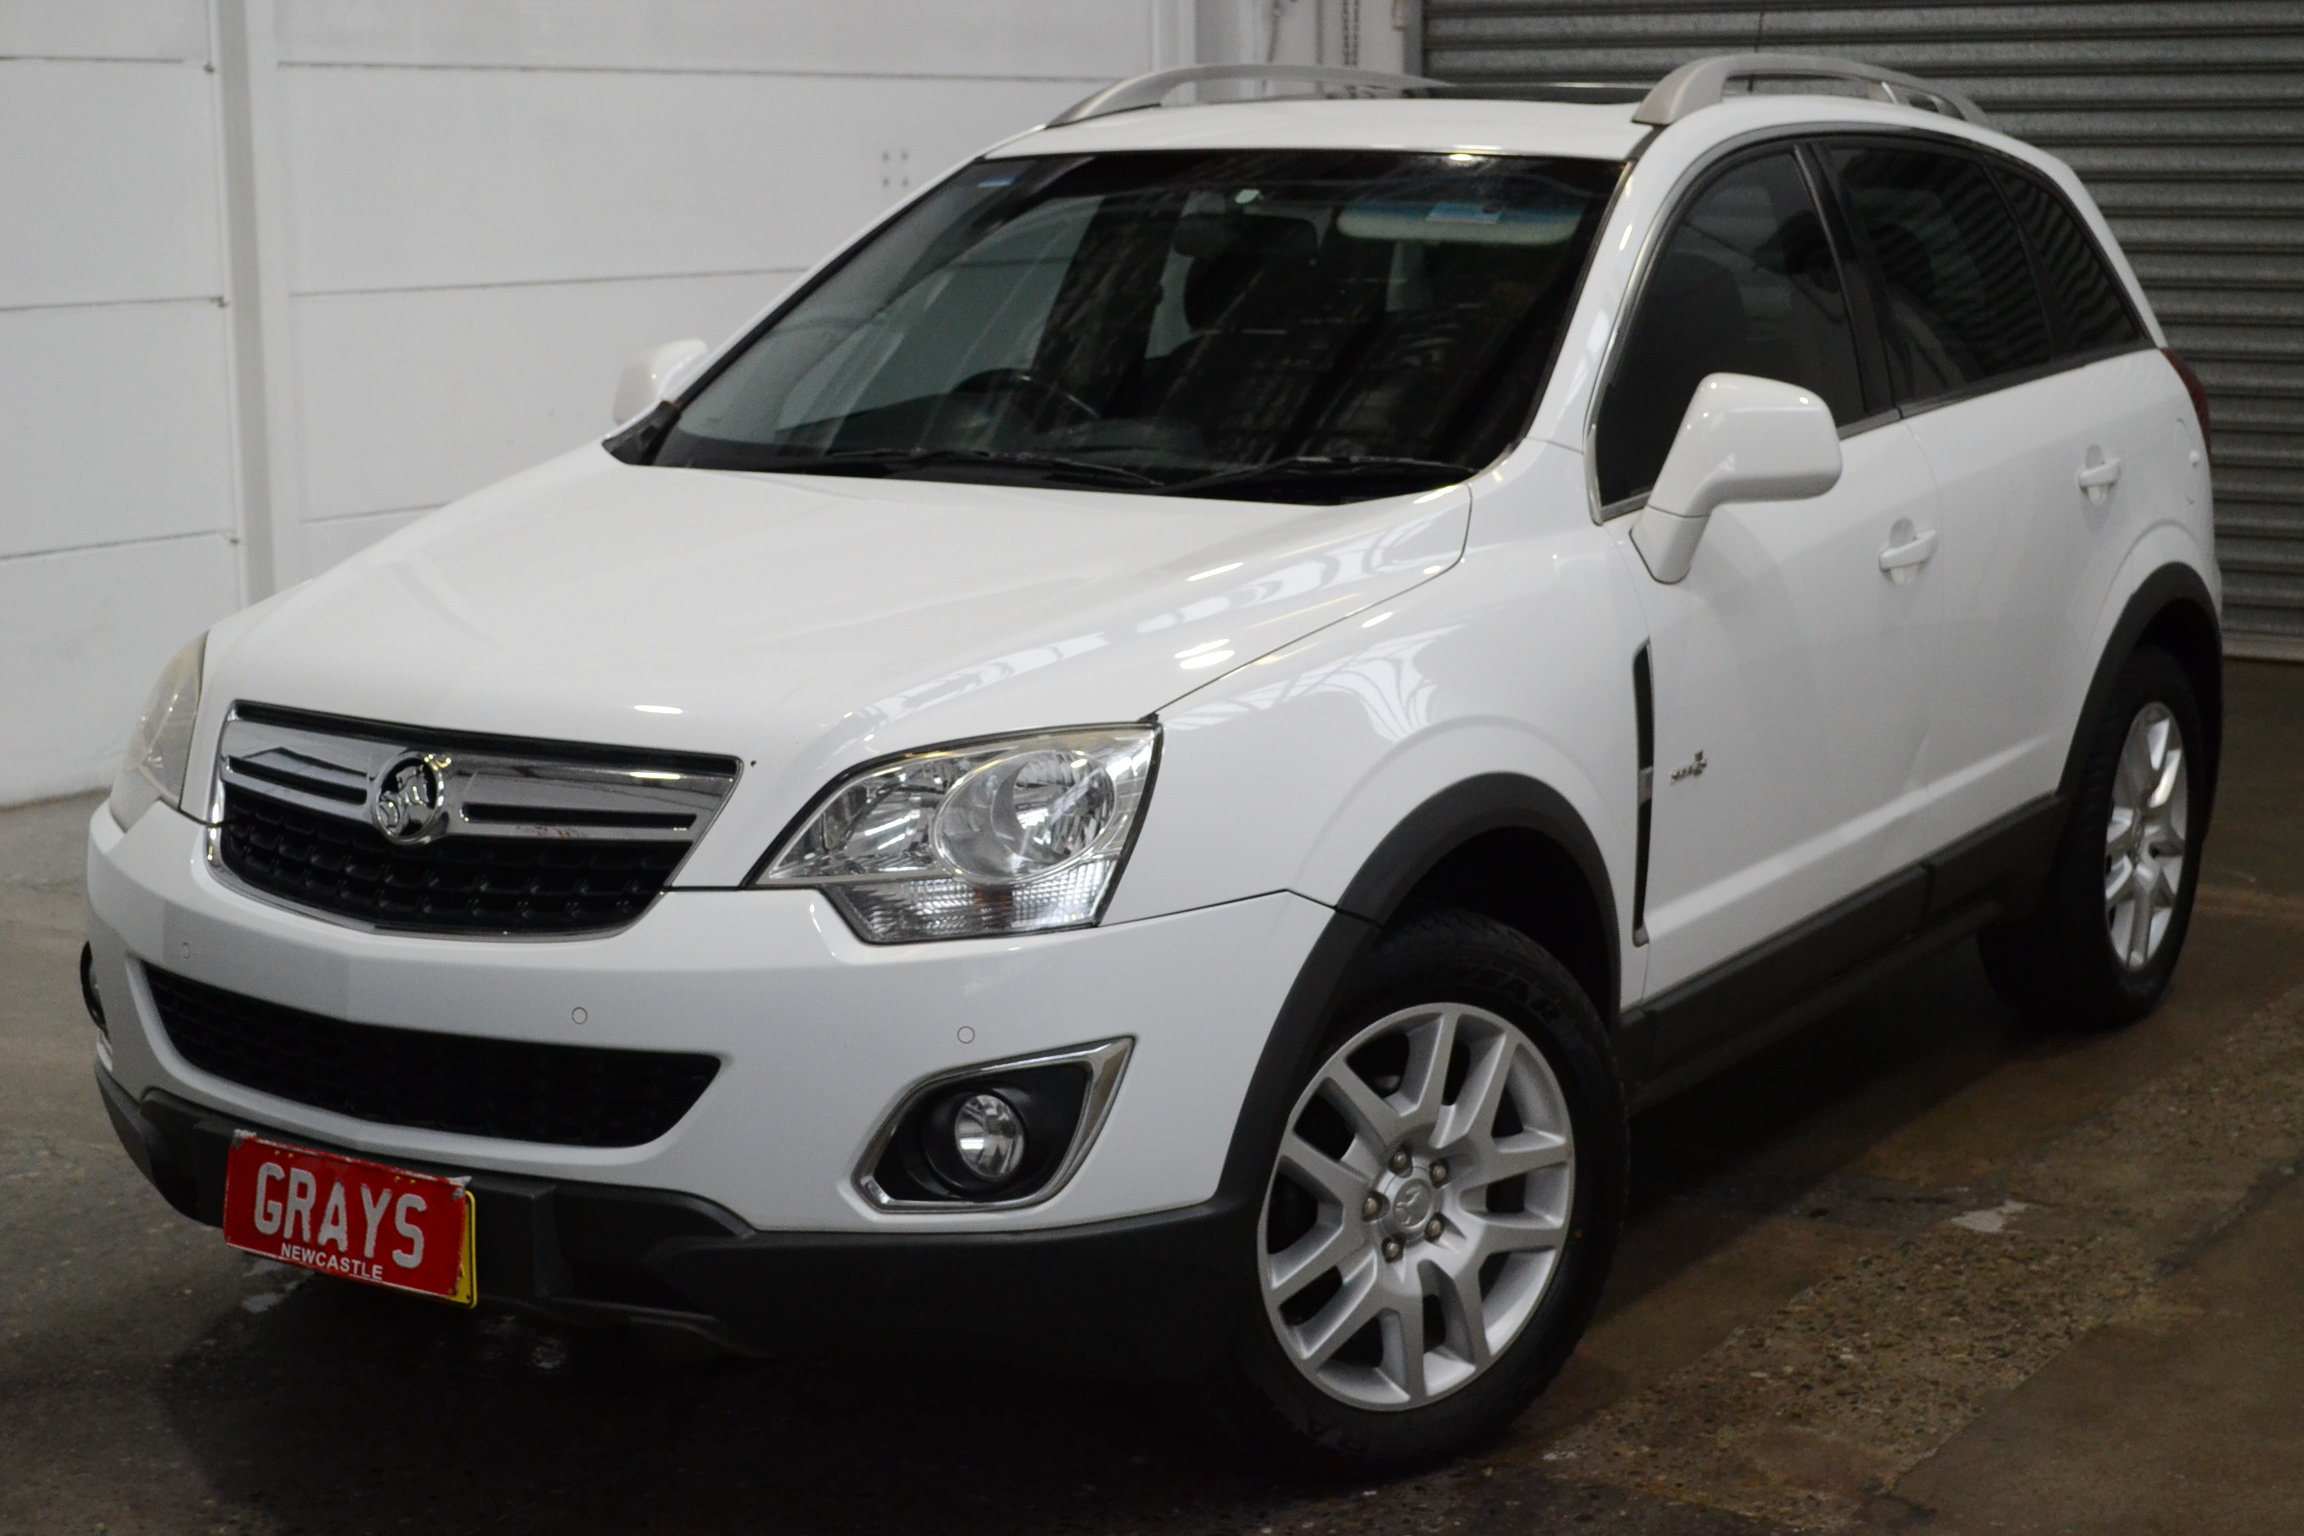 2013 Holden Captiva 5 (4x4) CG II Turbo Diesel Automatic Wagon